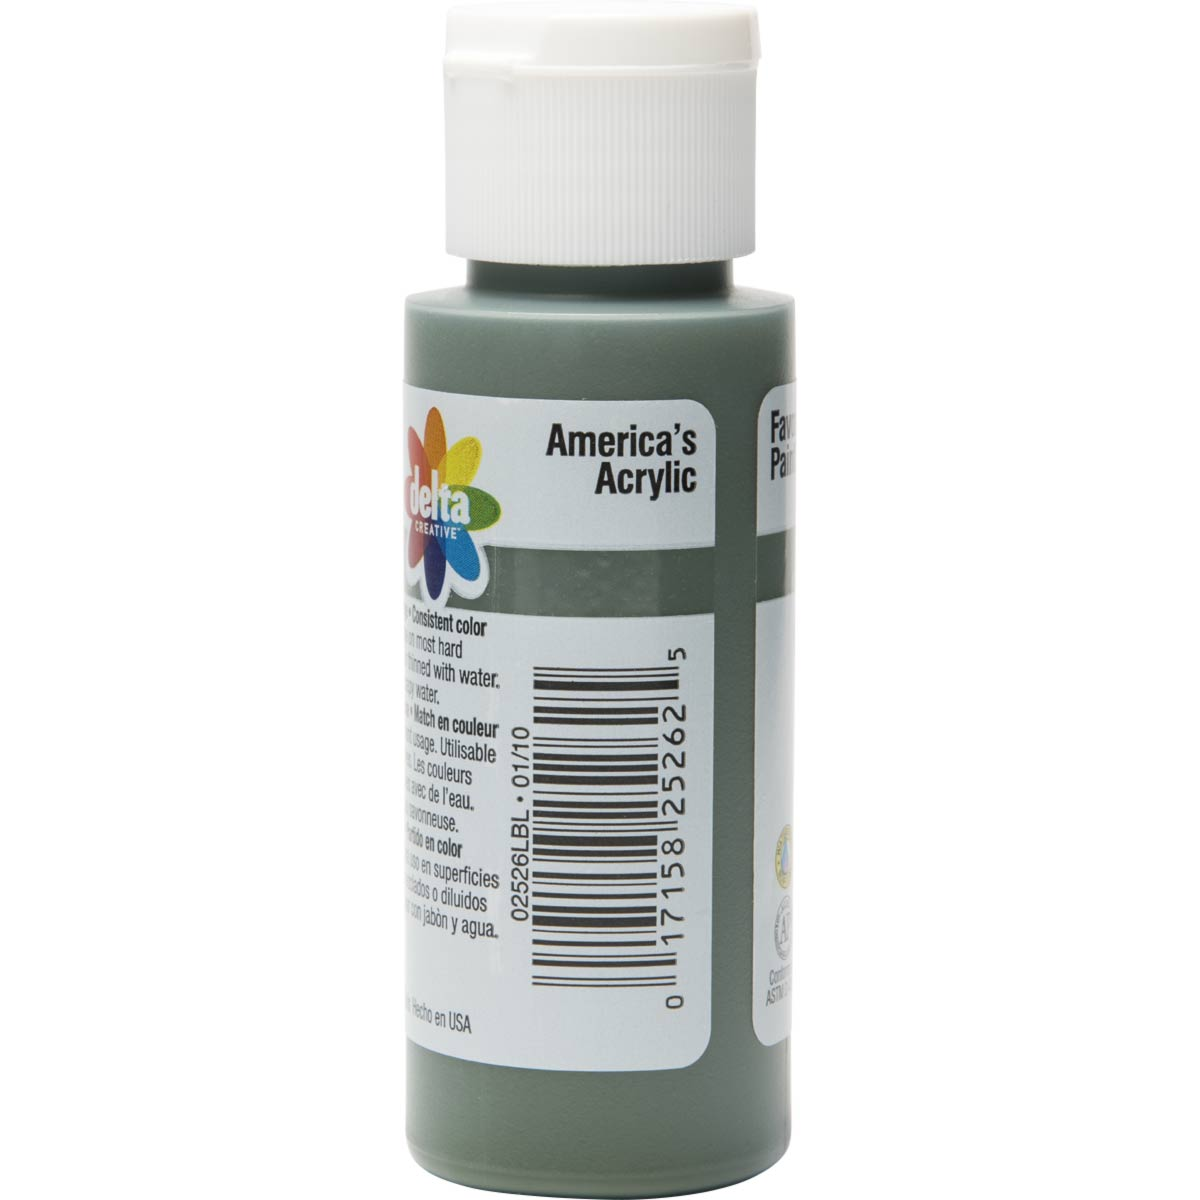 Delta Ceramcoat ® Acrylic Paint - Pine Green, 2 oz. - 025260202W